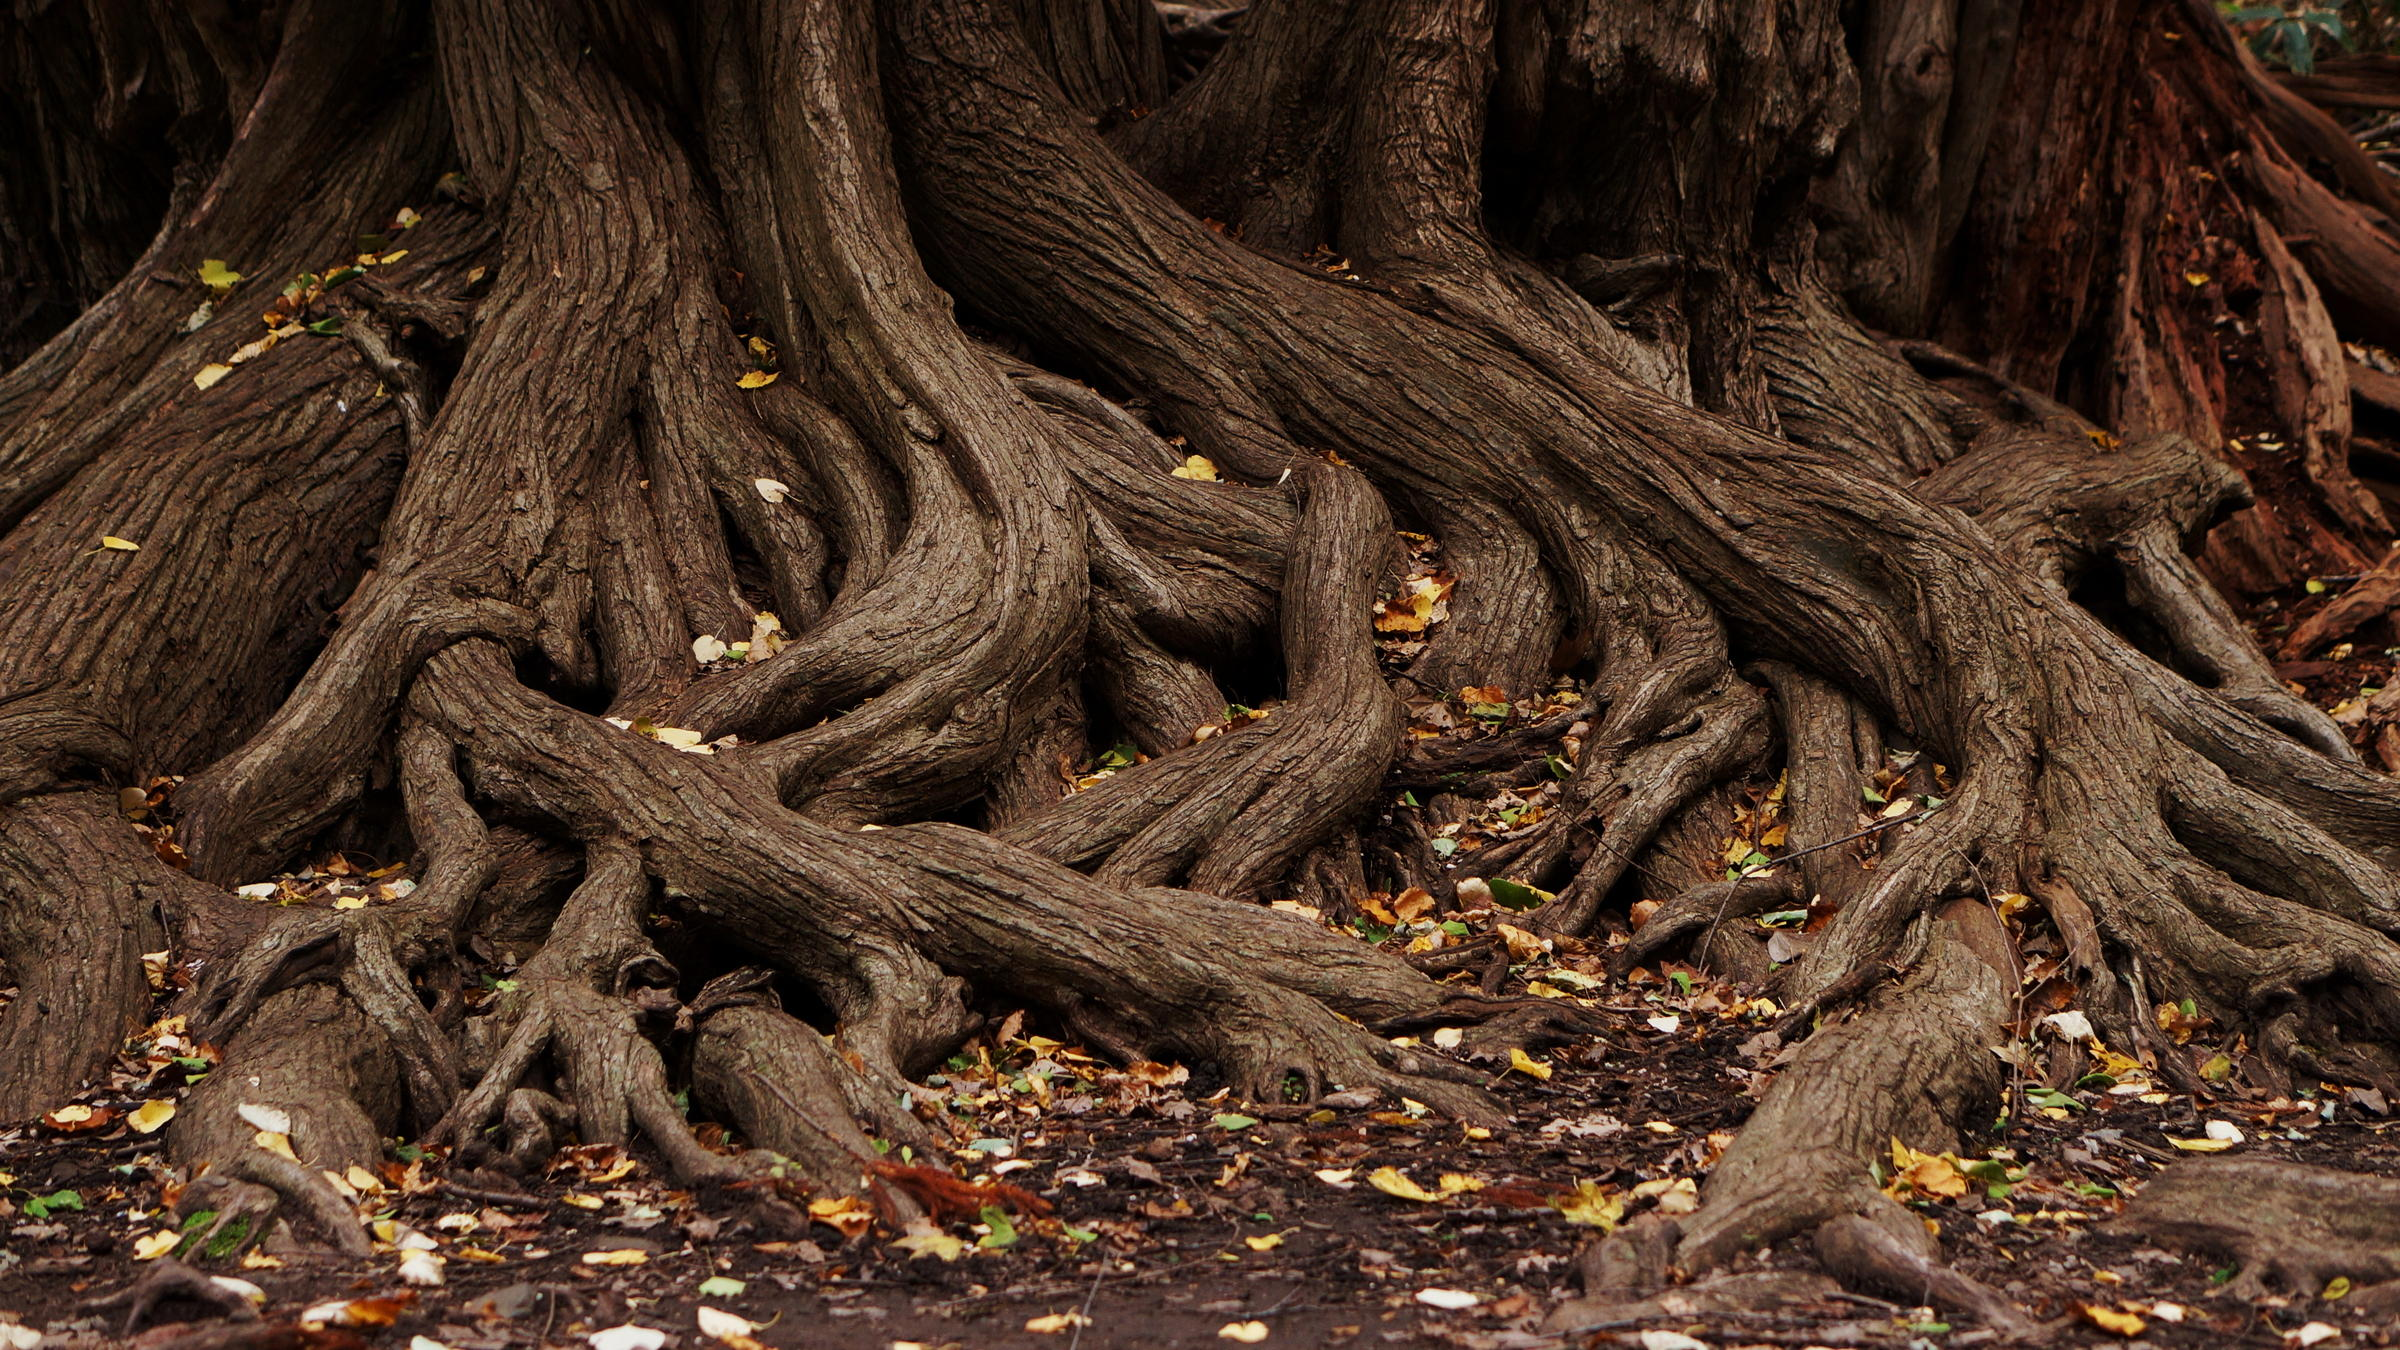 Roots photo